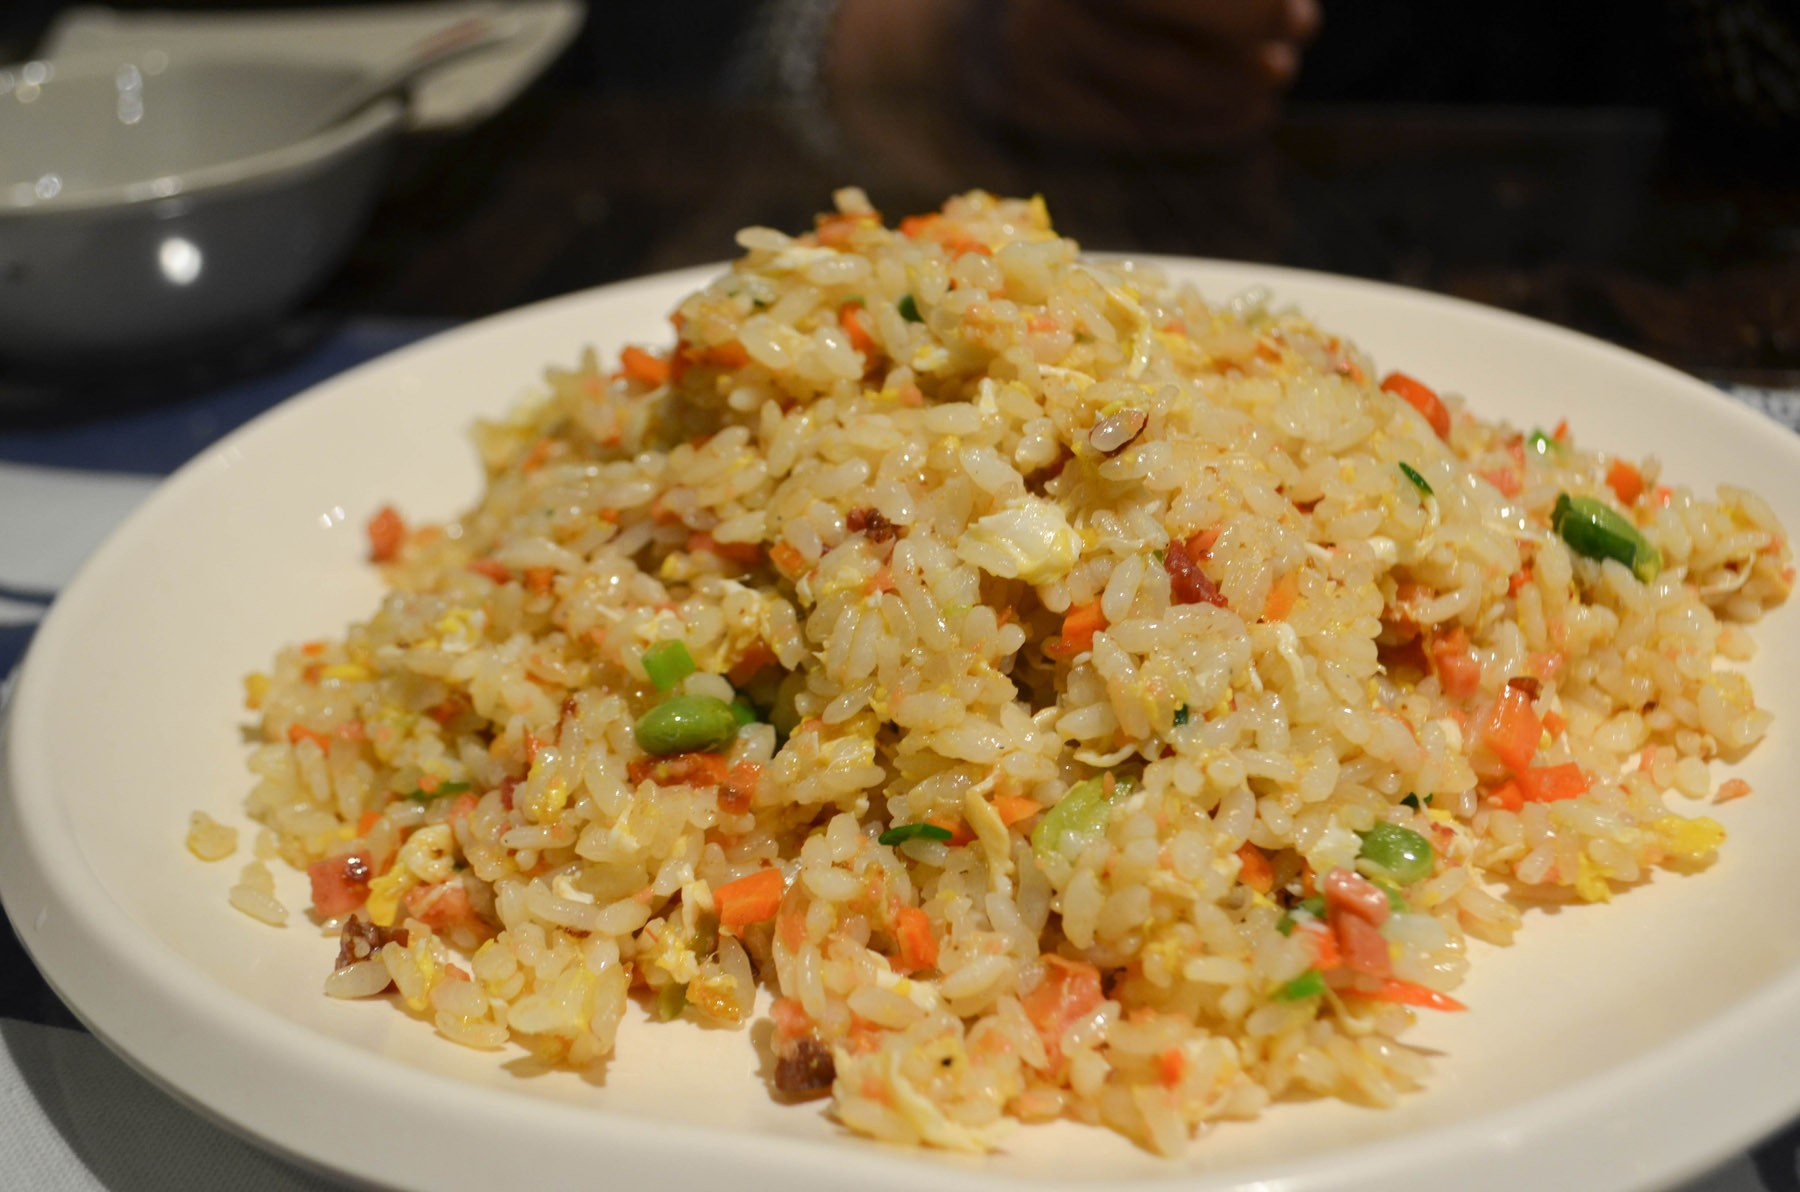 sweet-sausage-yangzhou-fried-rice_24402694096_o